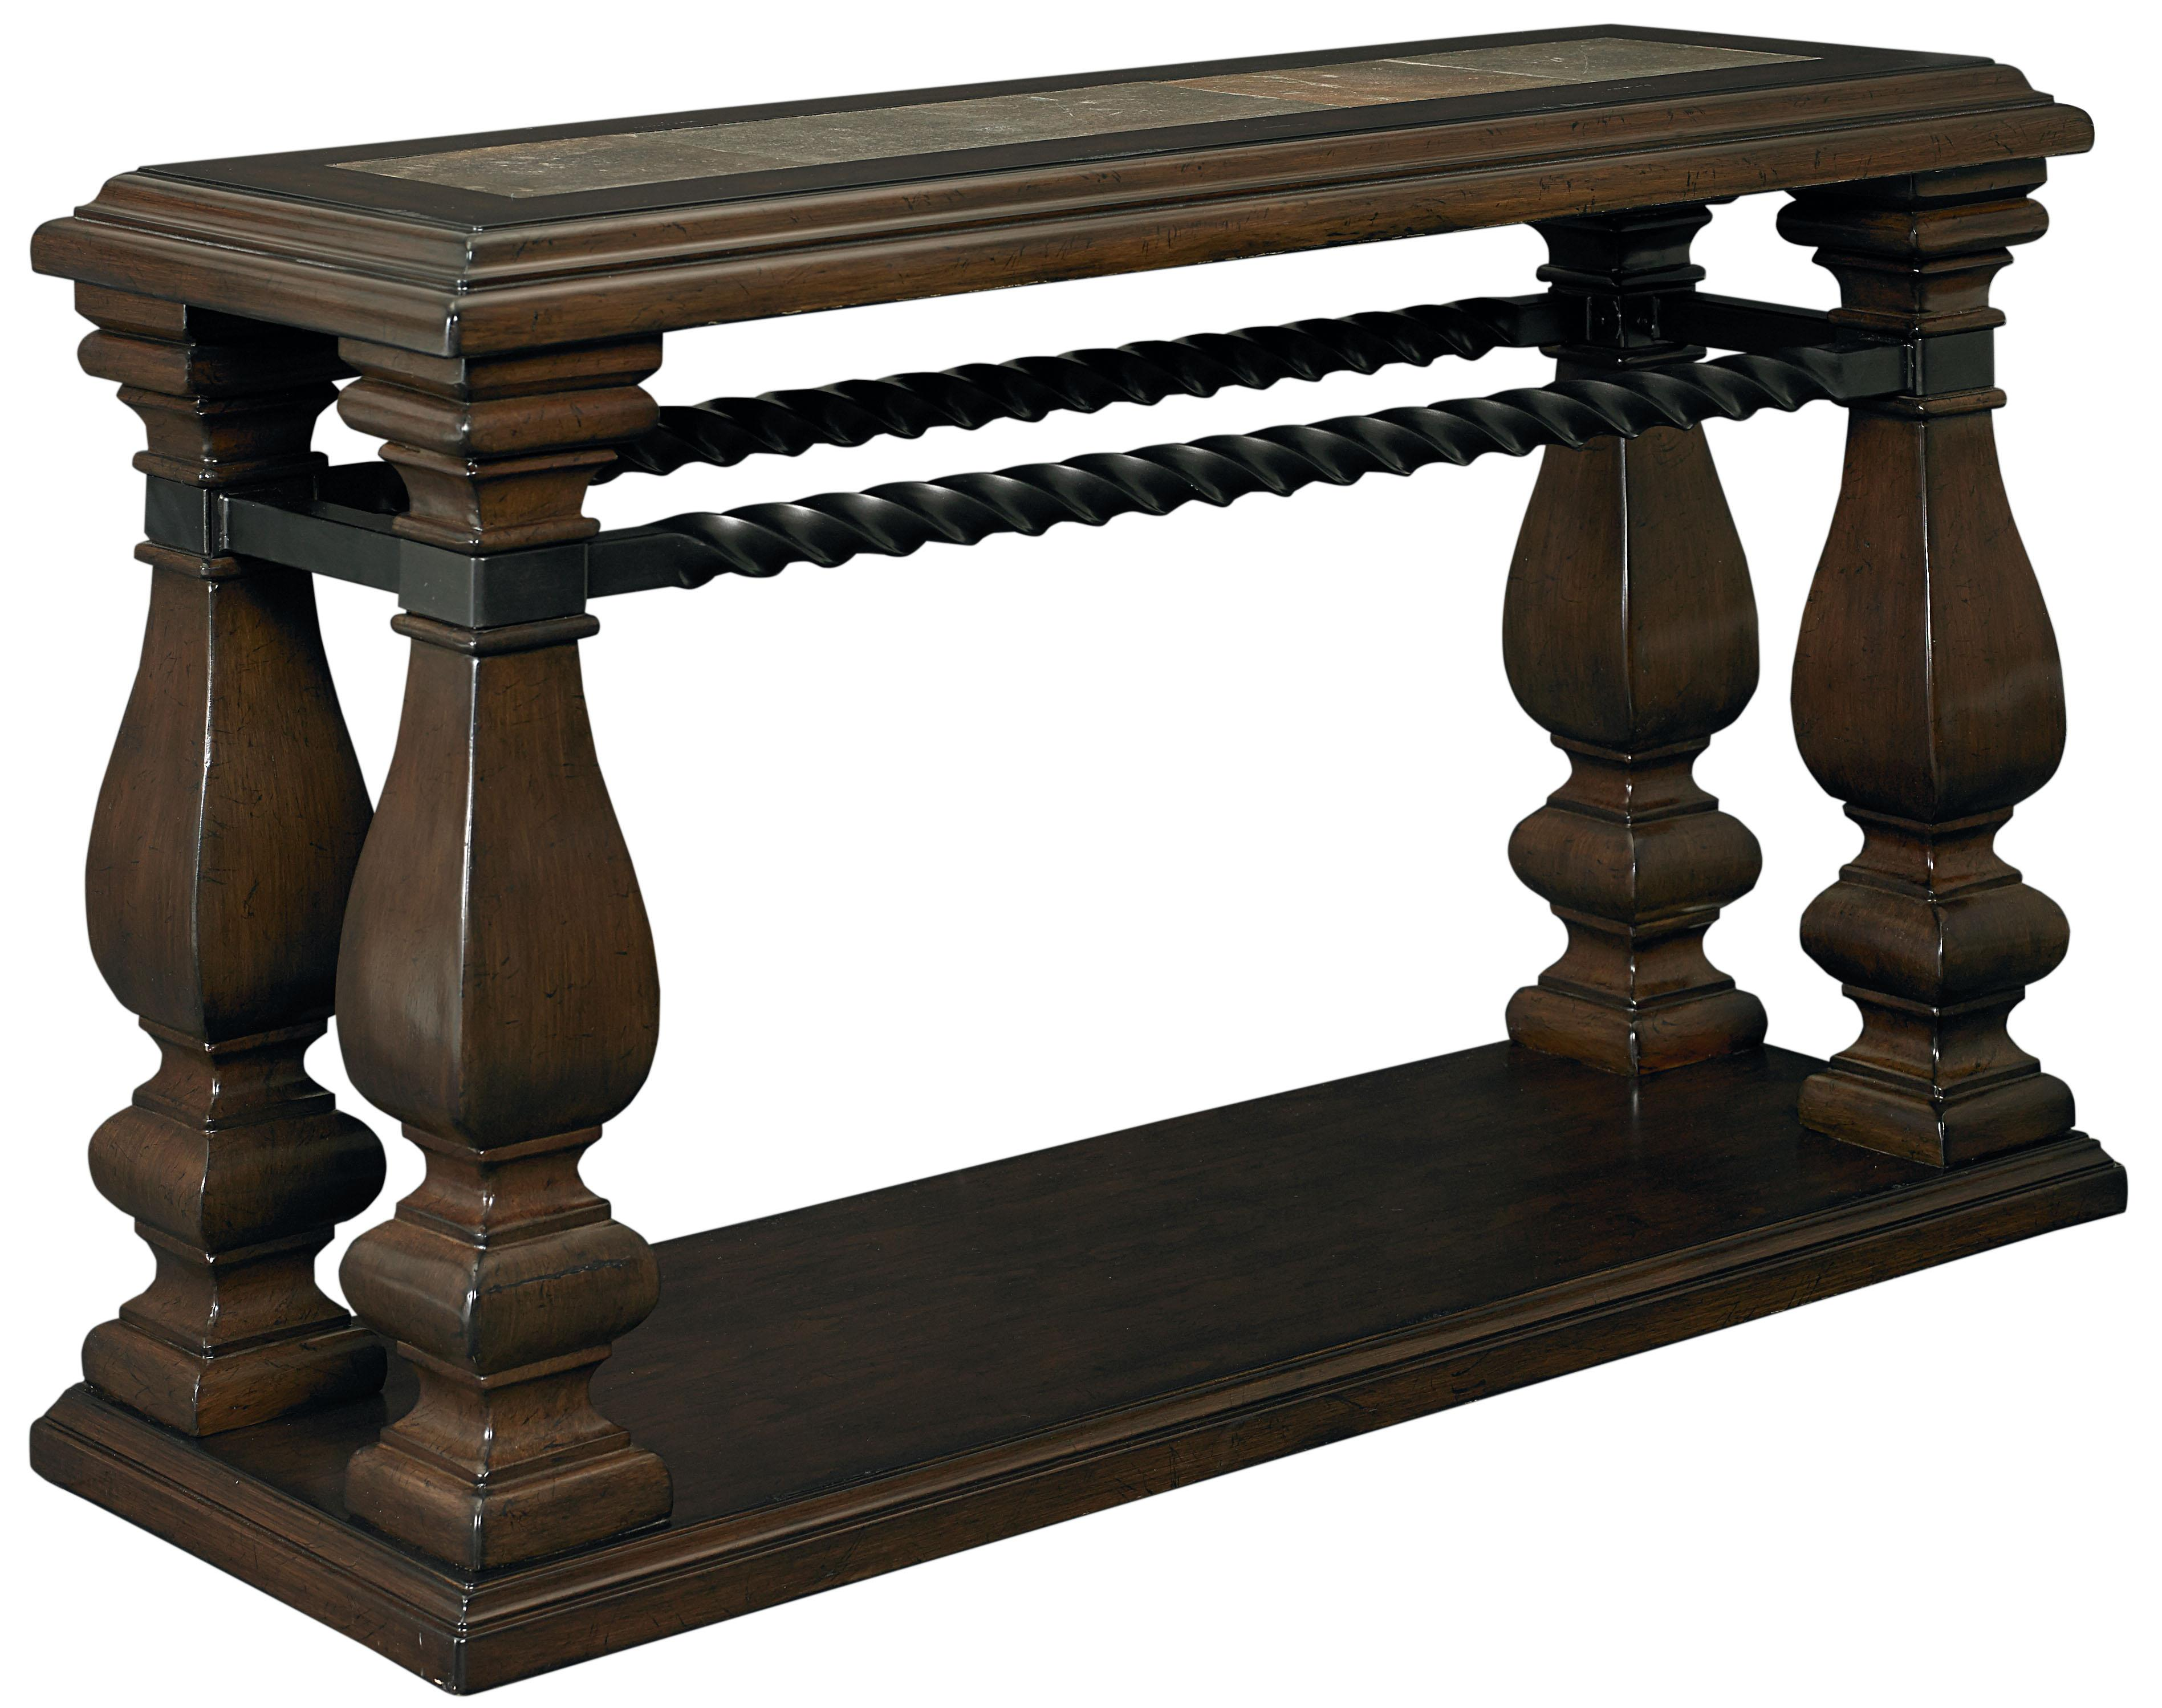 Standard Furniture San Moreno Console Table - Item Number: 28336